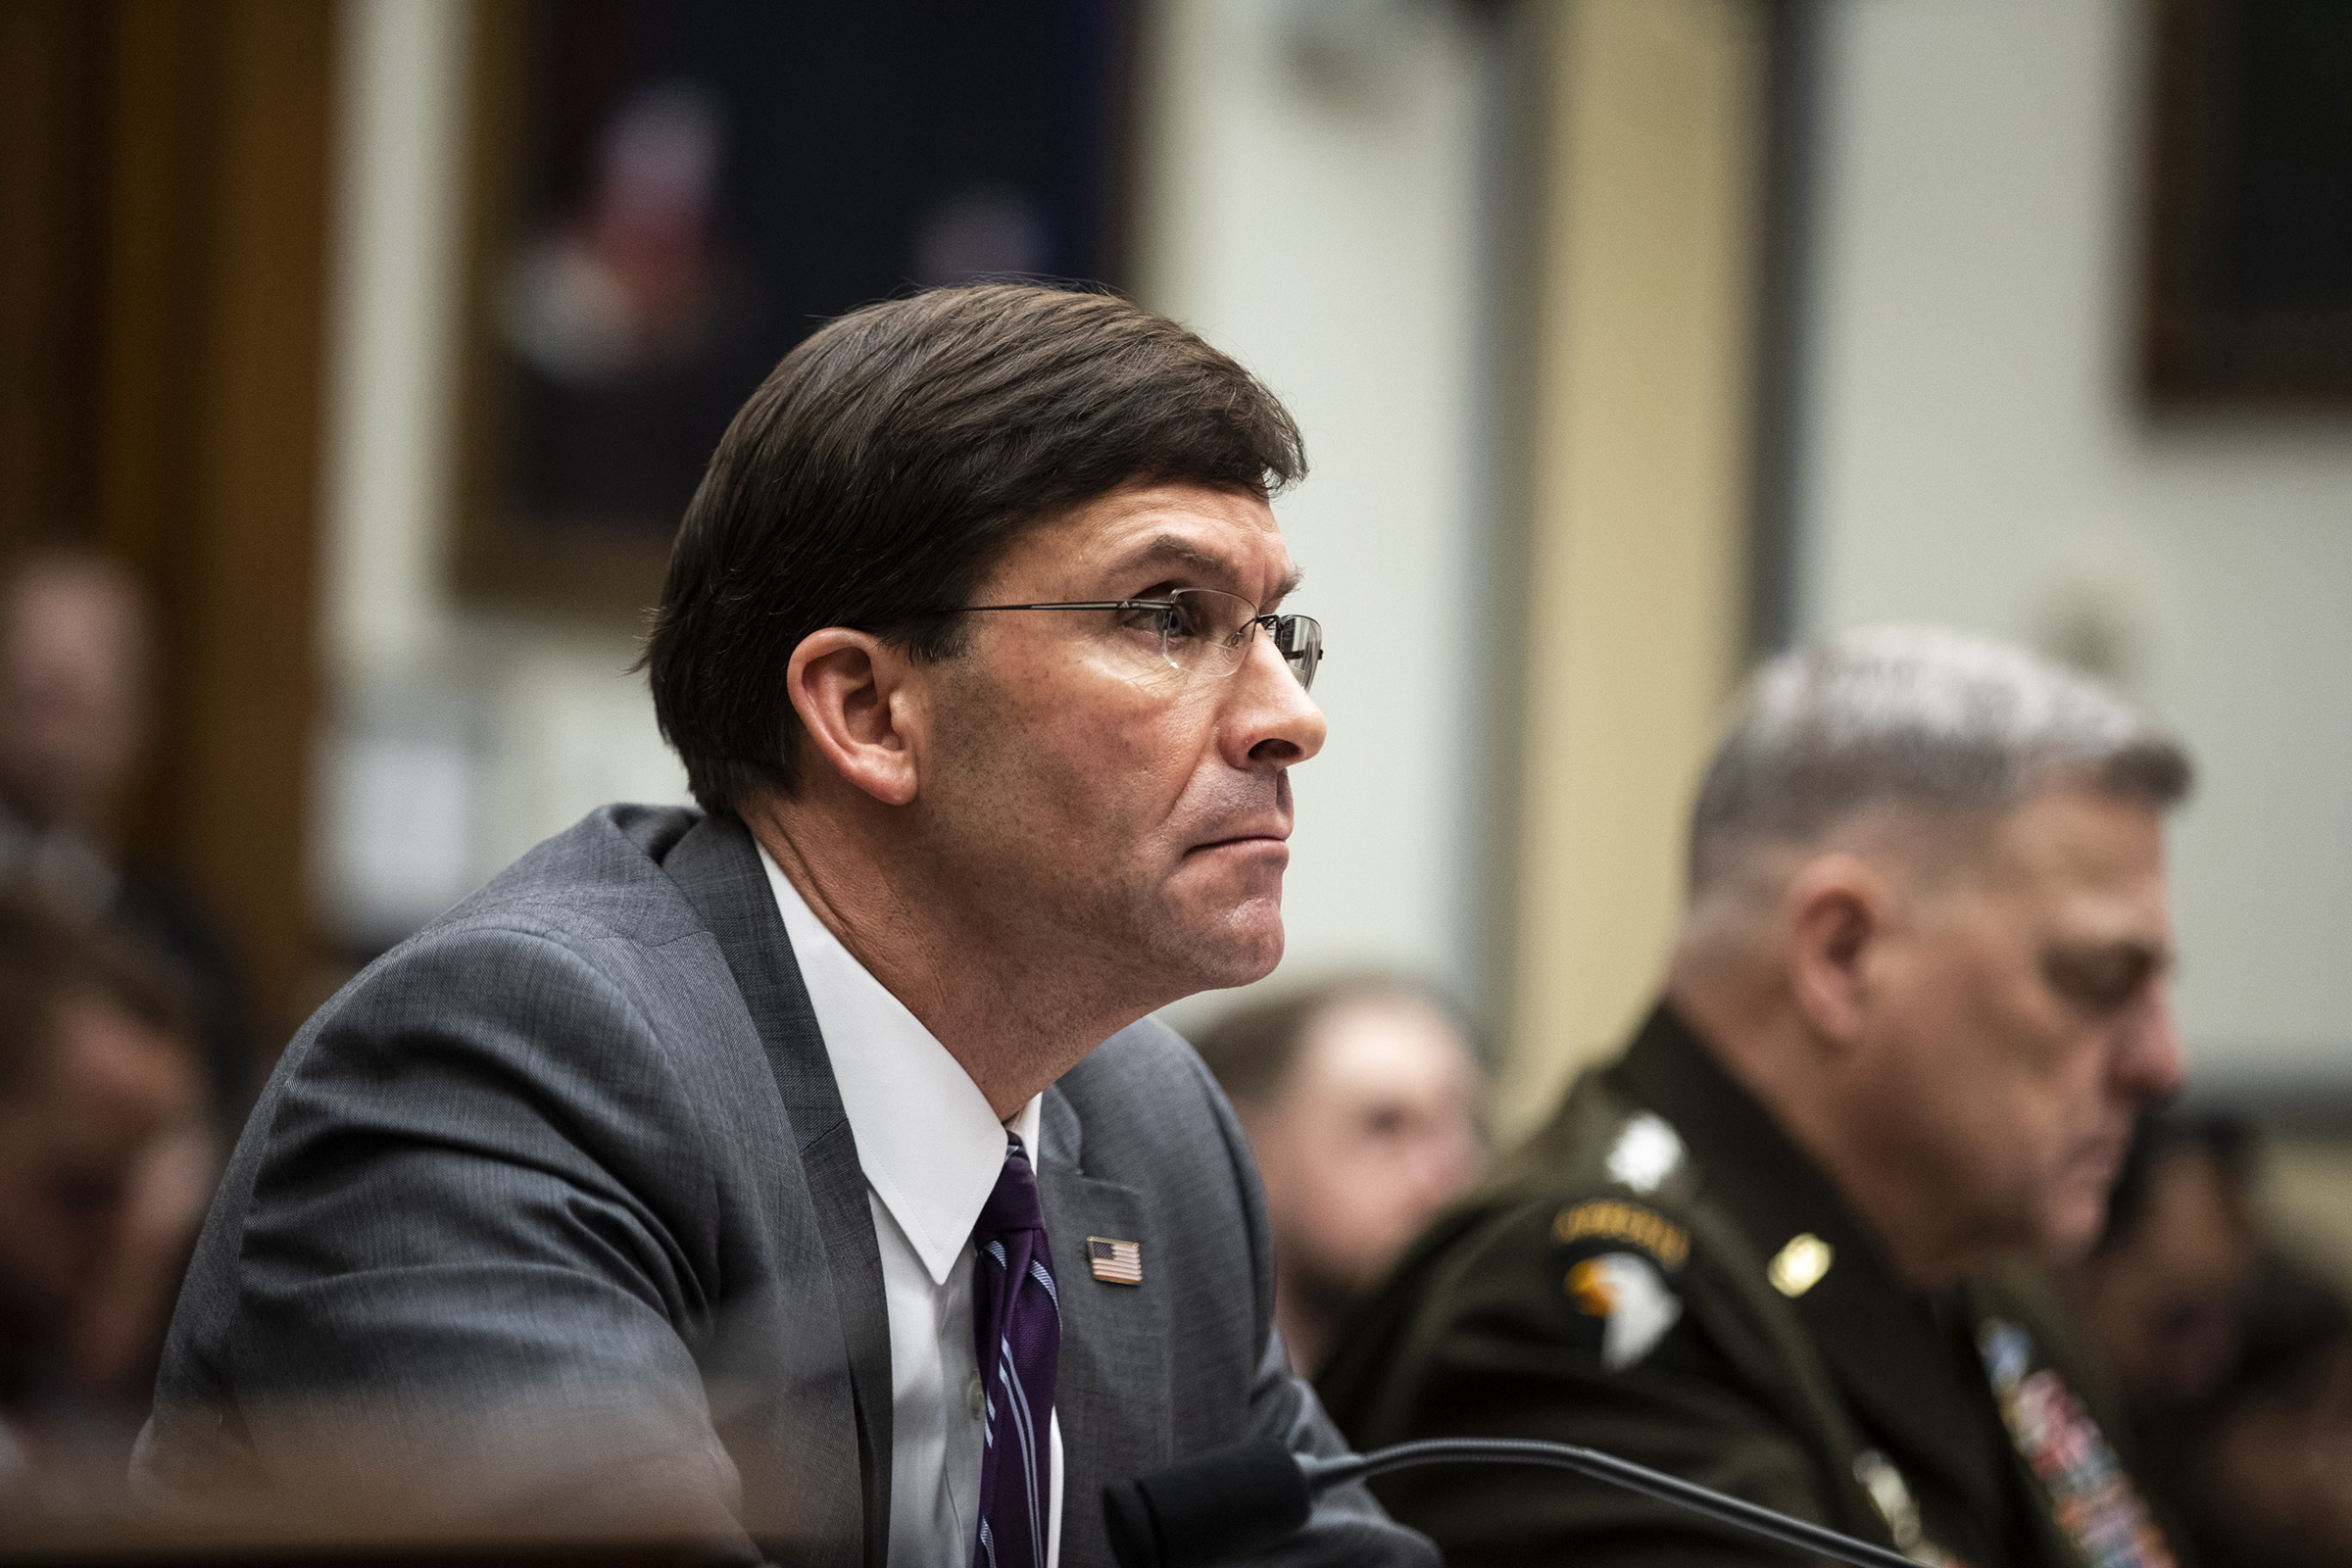 Defense Secretary Mark Esper appears before the House Armed Services Committee in Washington on Feb. 26, 2020.